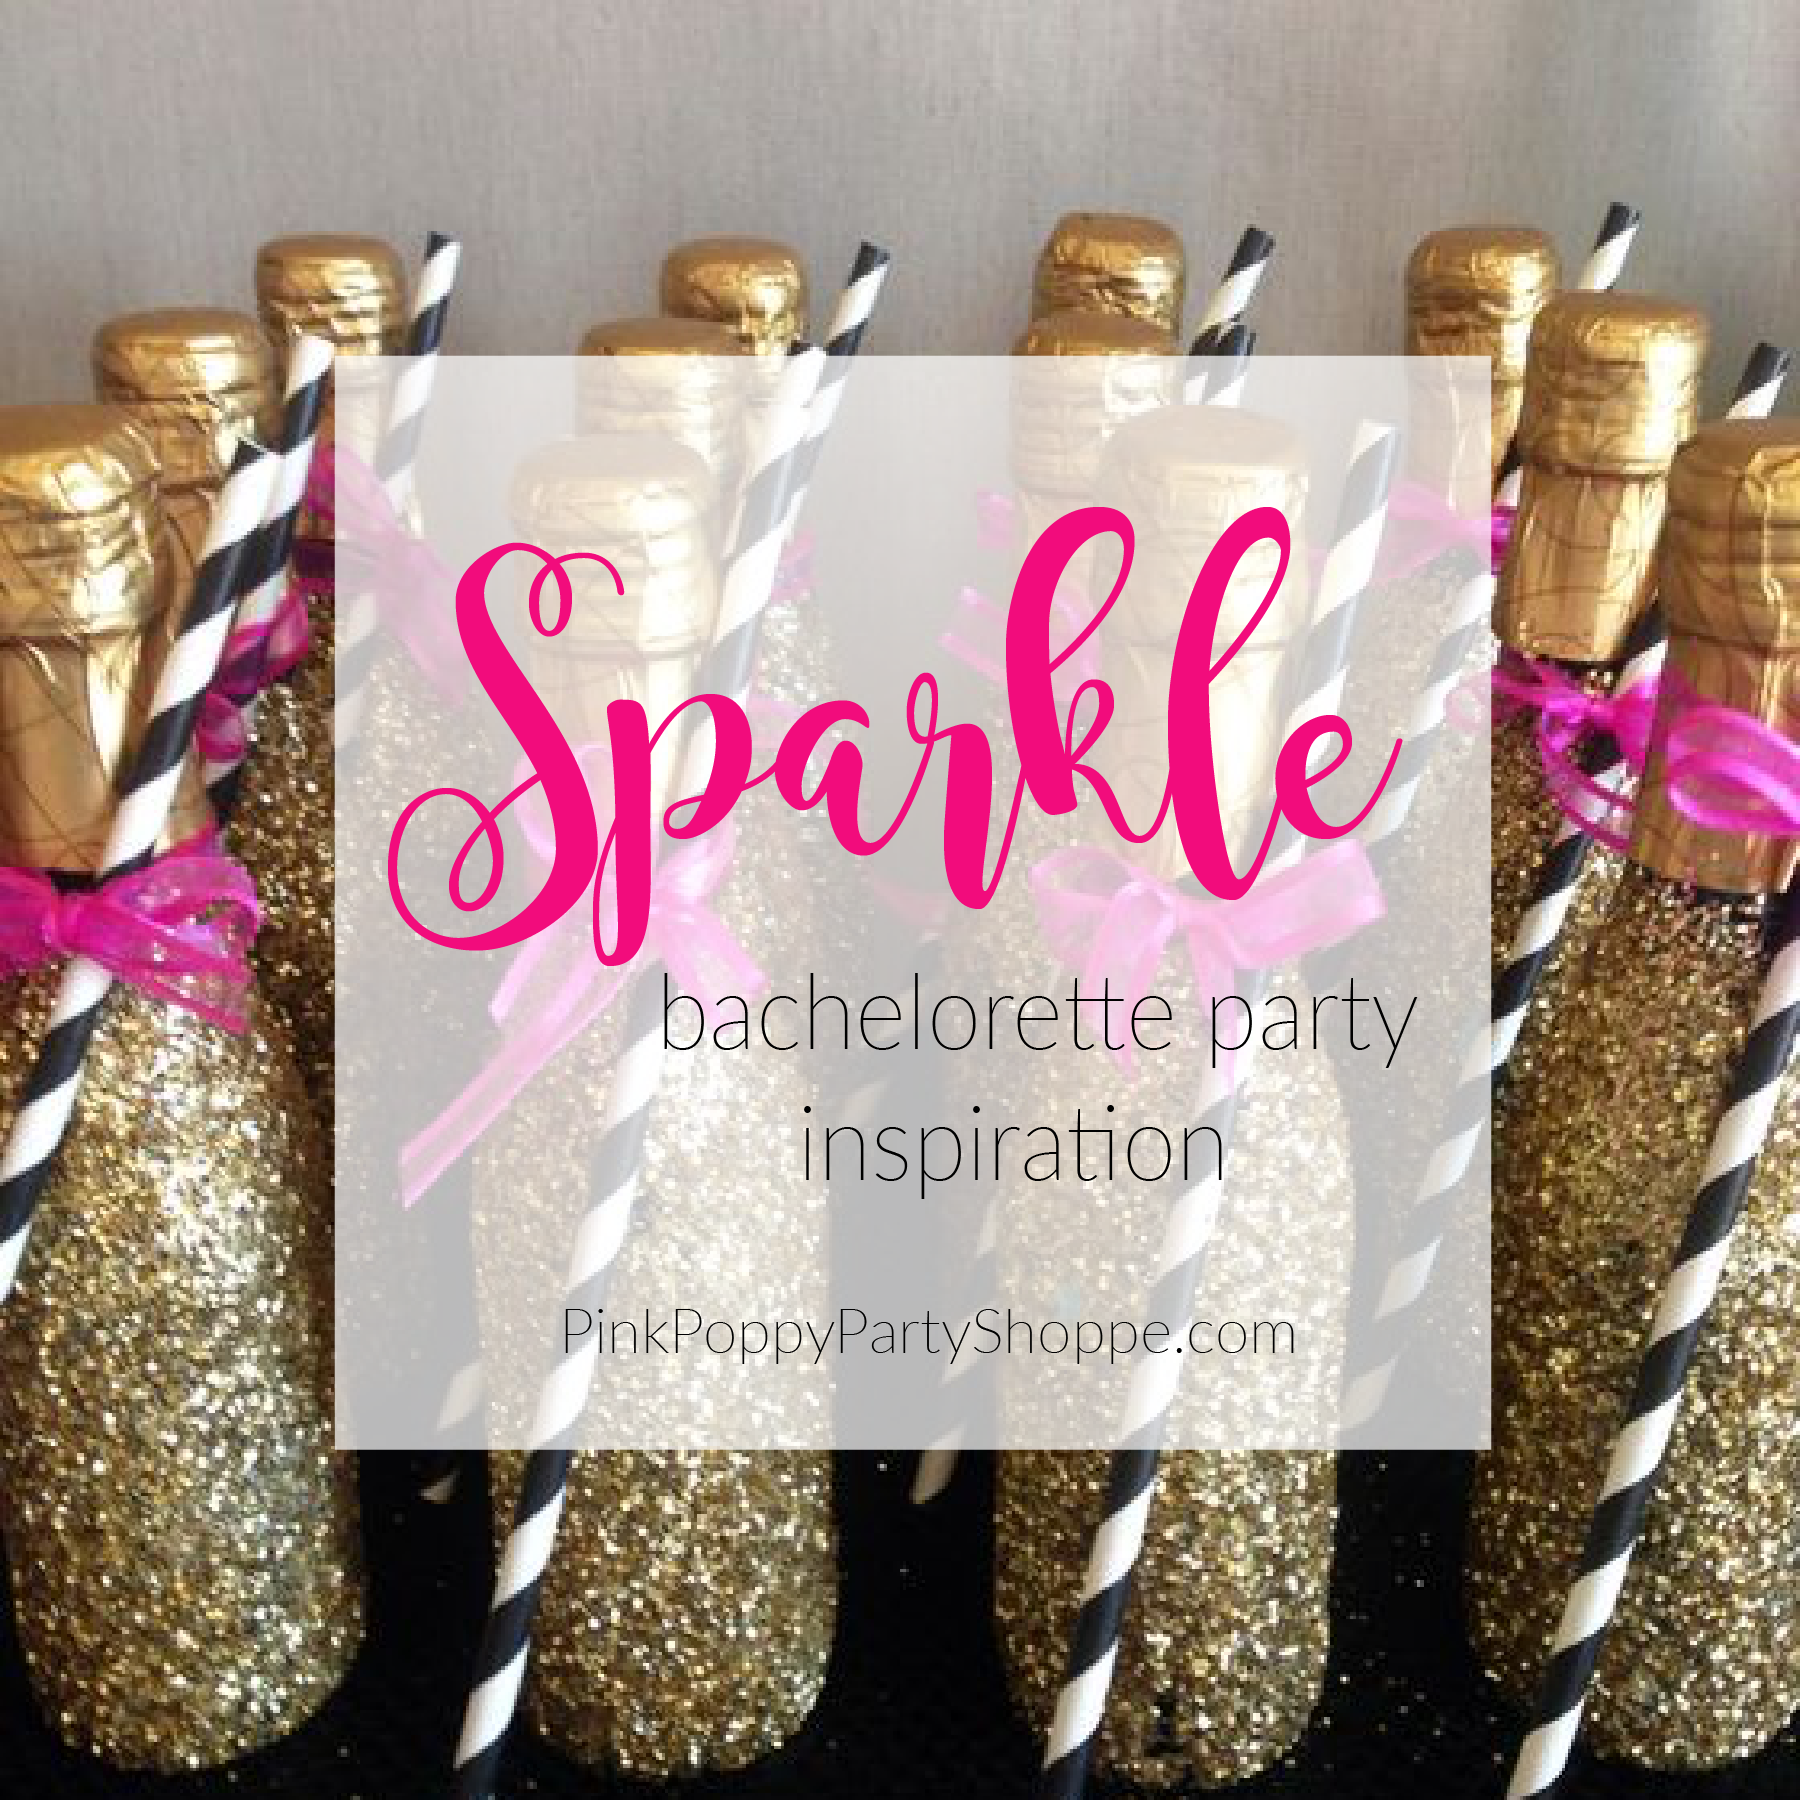 {Plan Your Party} Sparkle Bachelorette Party Inspiration